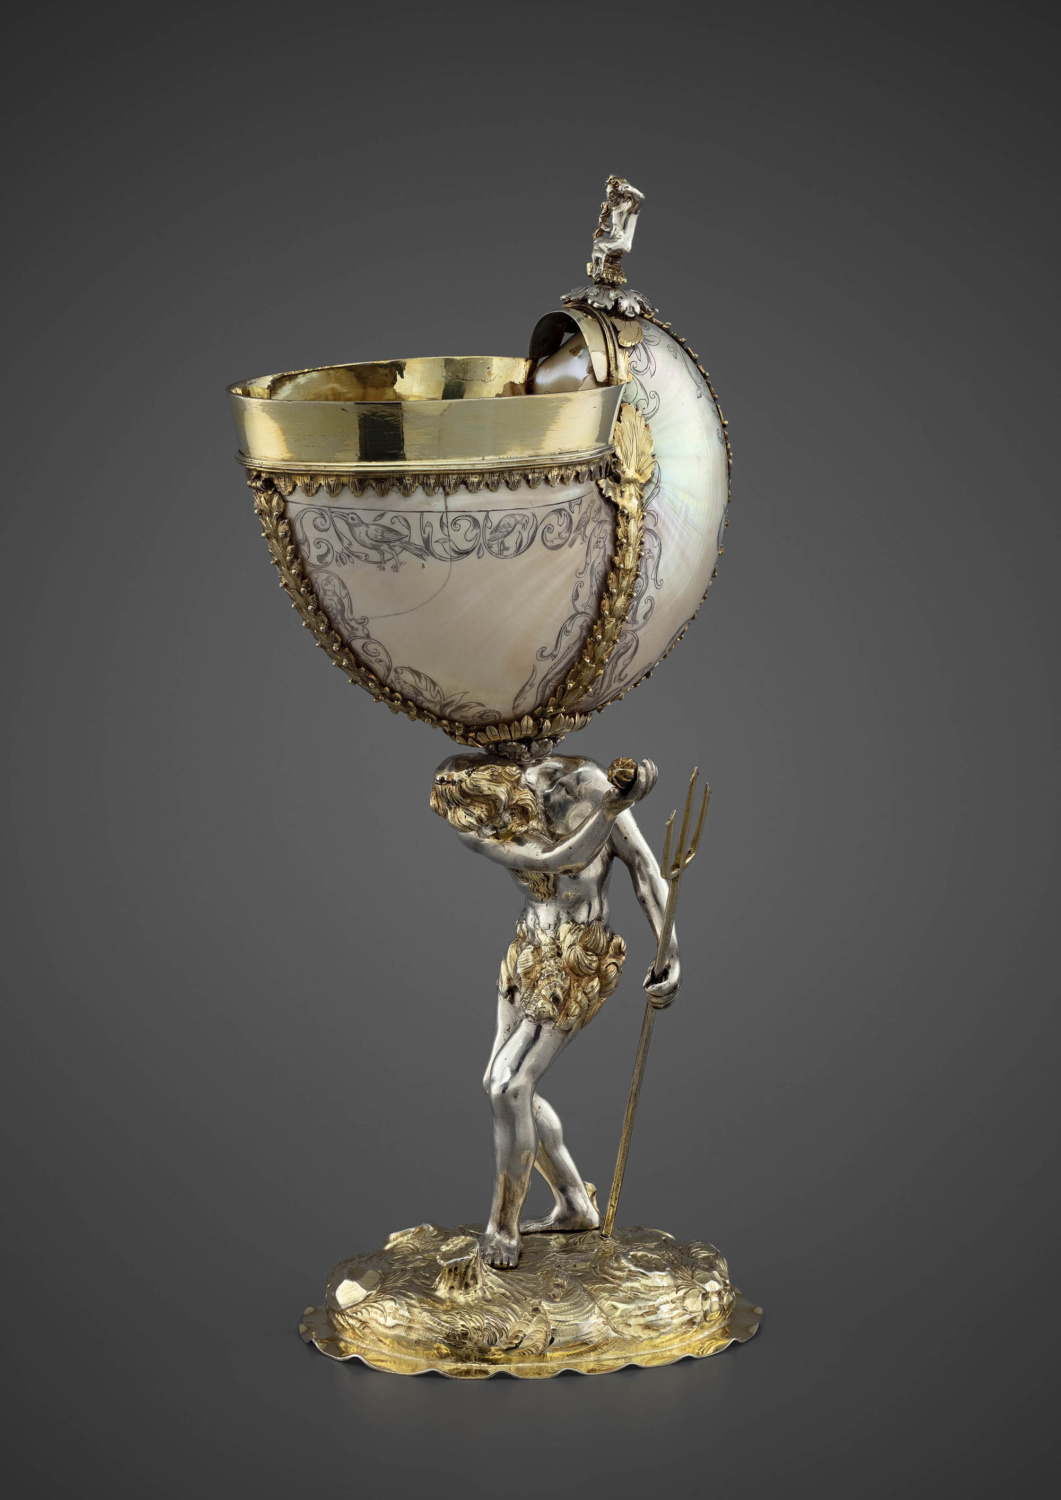 A parcel-gilt silver mounted nautilus shell - Galerie Kugel